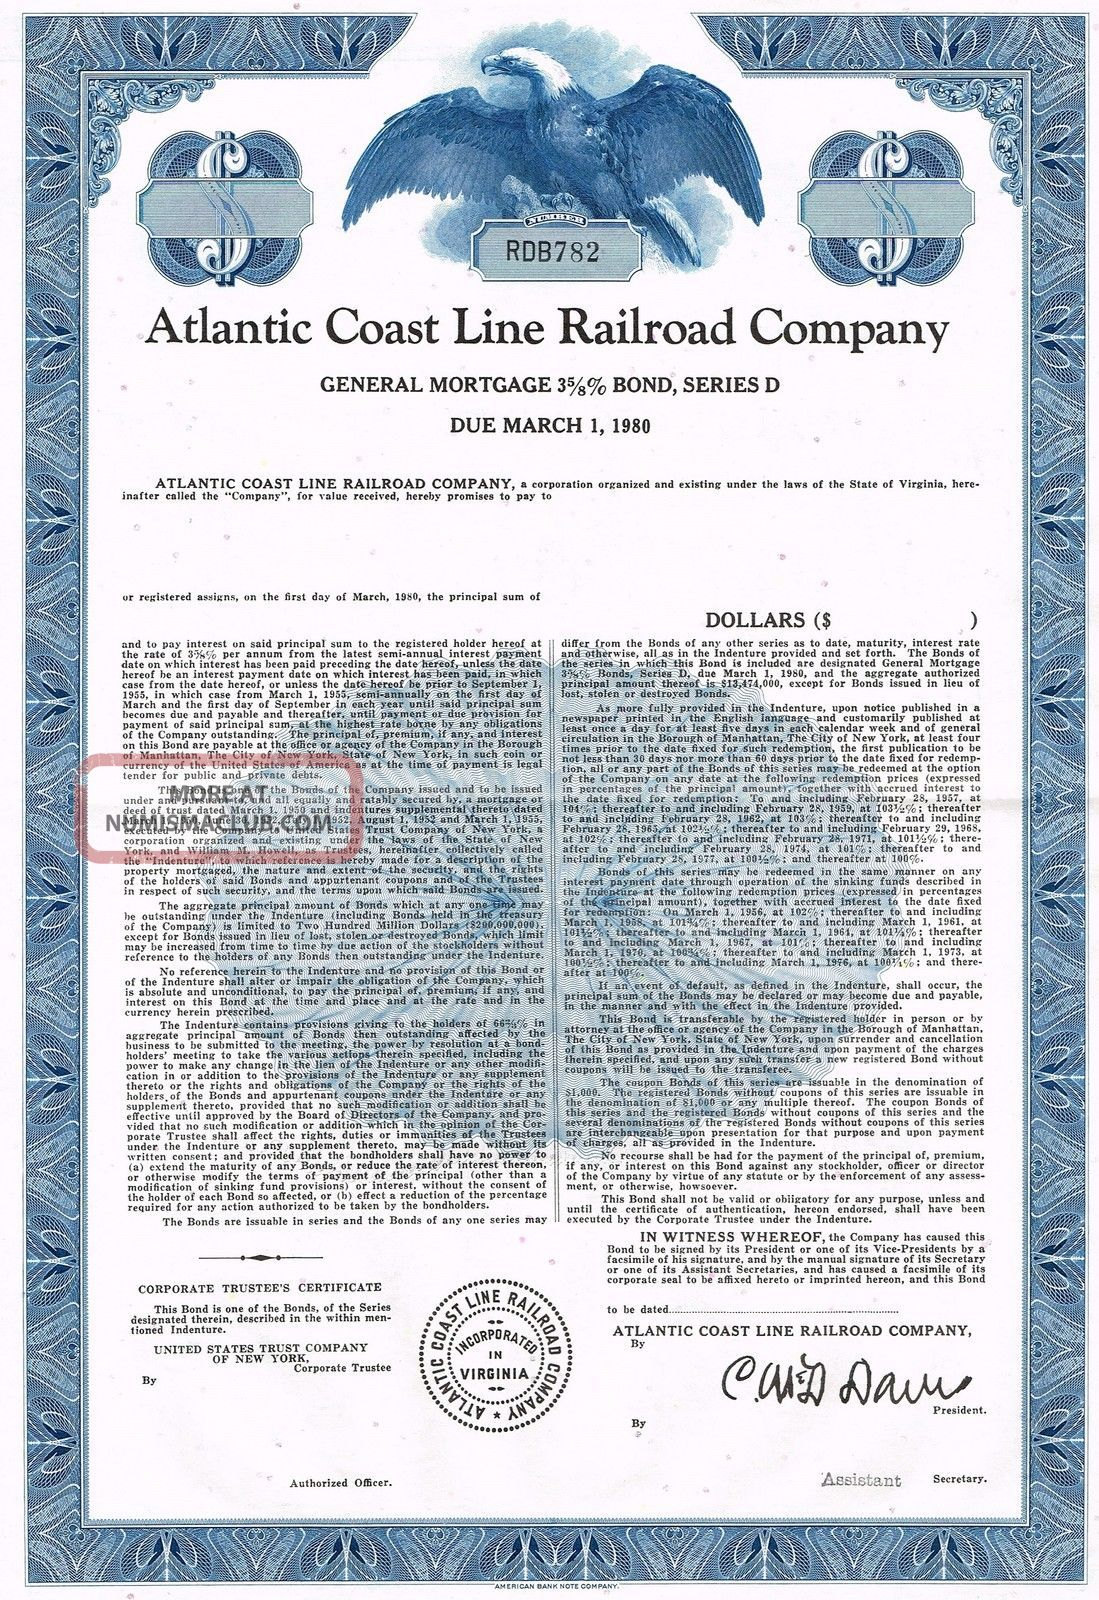 Usa Atlantic Coast Line Railroad Company Bond Stock Certificate World photo